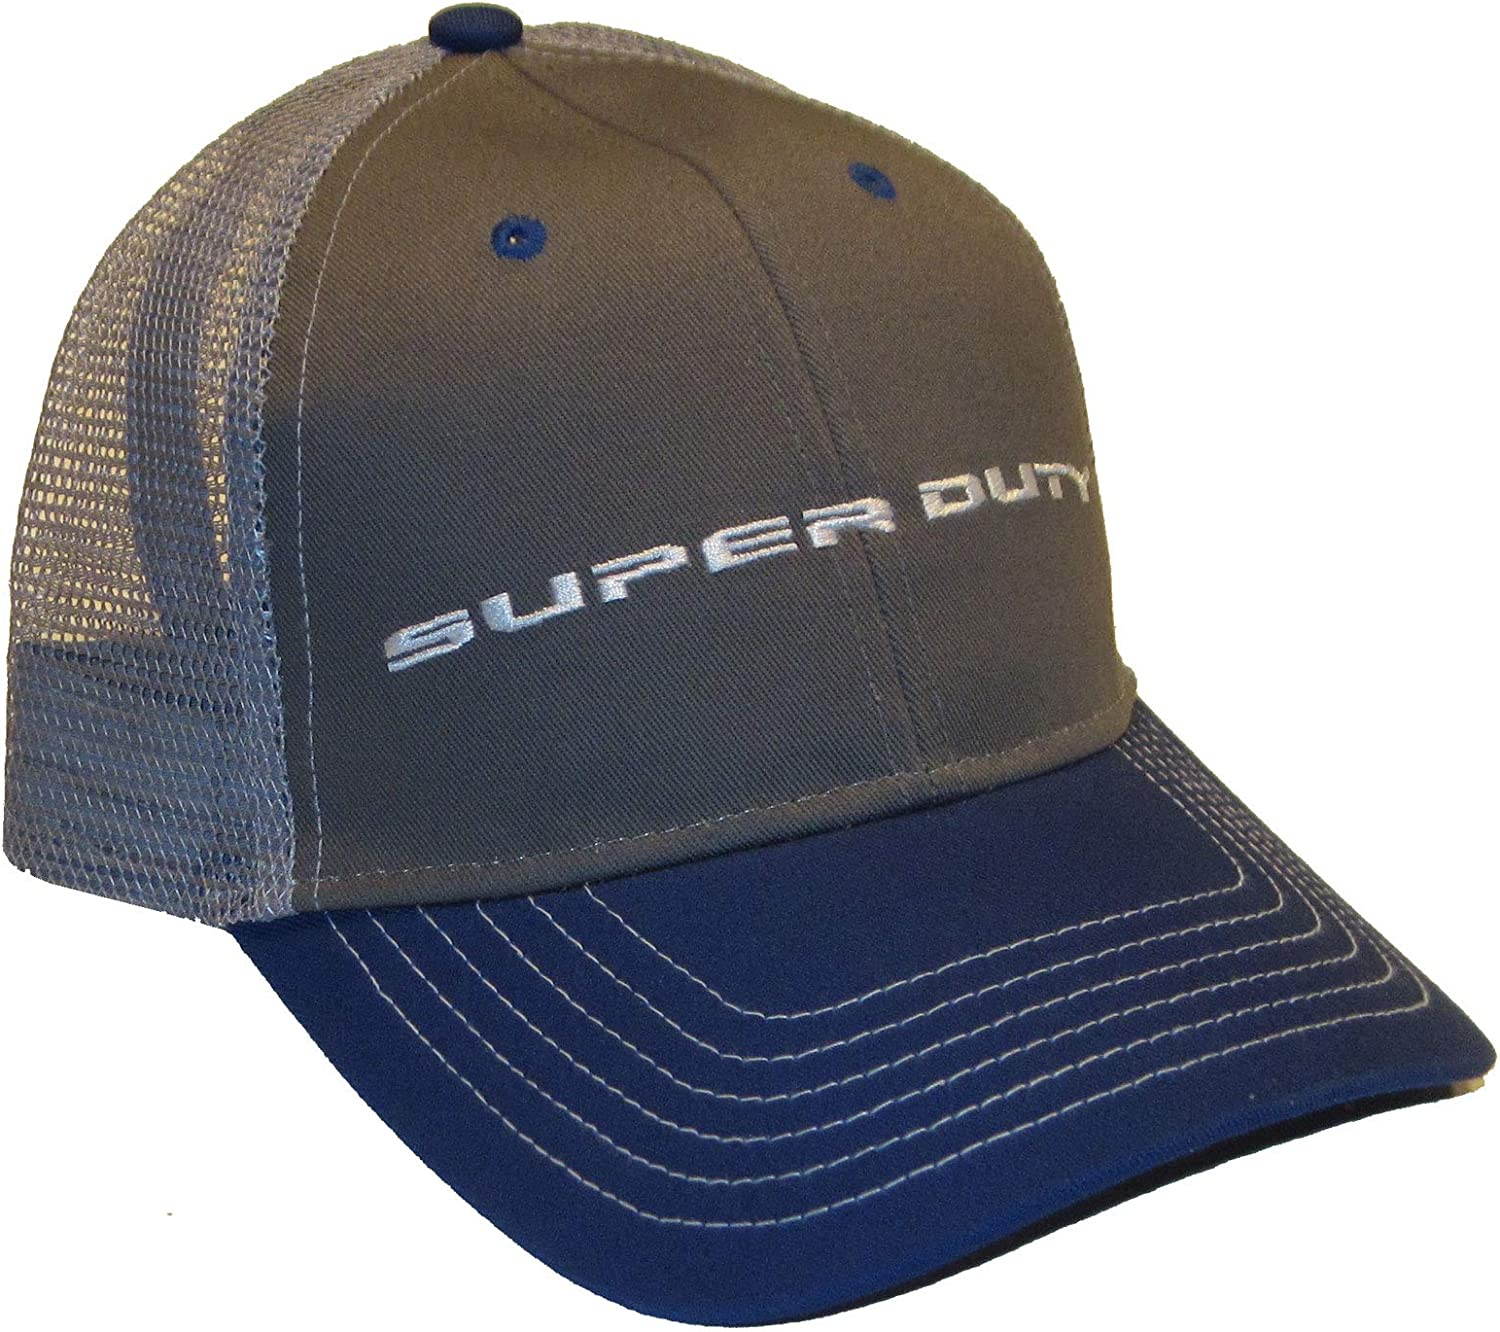 Gregs Automotive Ford Built Tough Hat Cap Bundle with Driving Style Decal